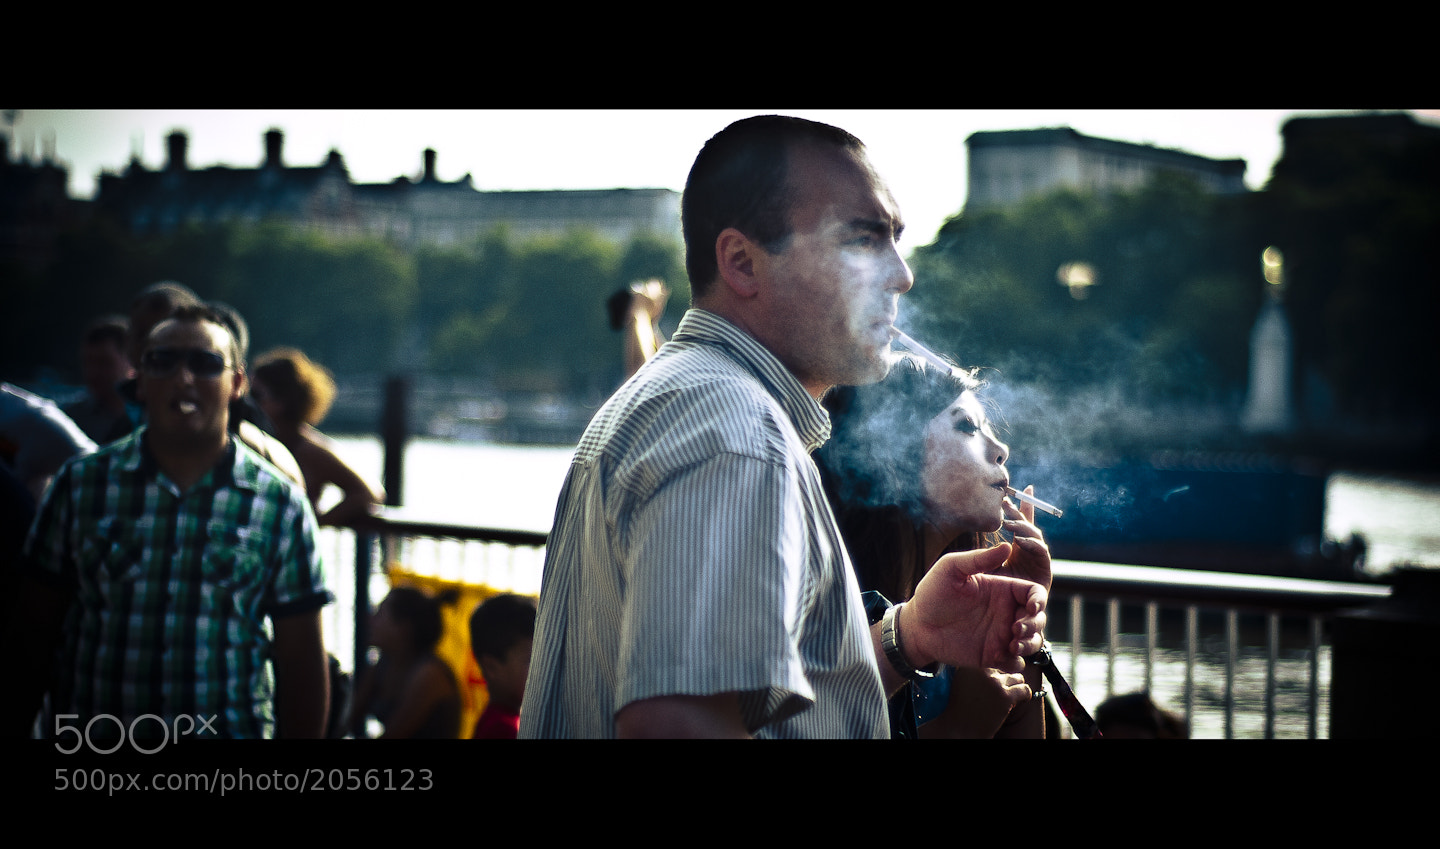 Photograph Smokers delight by Chak H on 500px